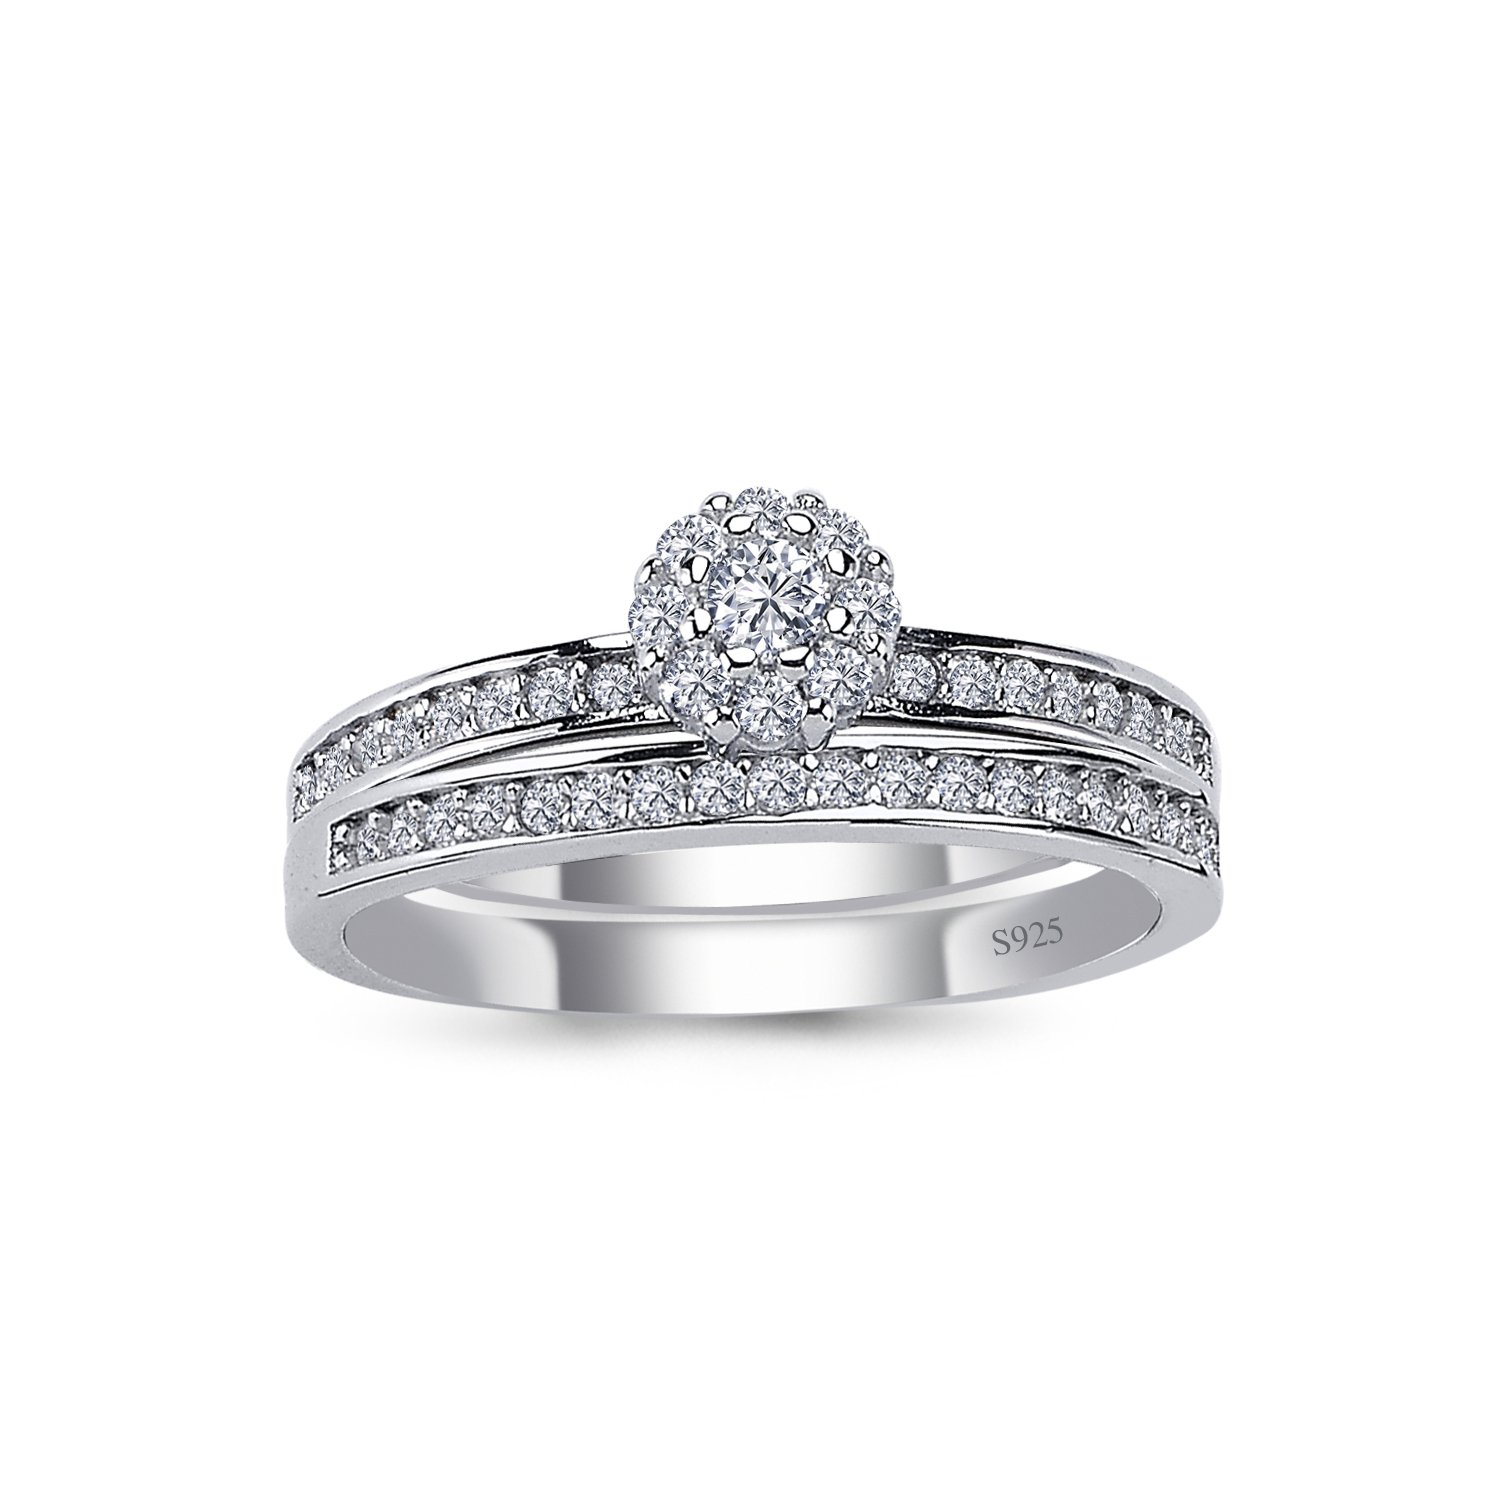 925 Solid Sterling Silver Cushion Halo AAAAA+ Gem Grade Quality ROUND BRILLIANT Cut 2 Pieces RING Set,Bridal Sets Anniversary Promise Engagement Wedding CZ Rings Comfort Fit and Rhodium Plated by CHIARA (Image #1)